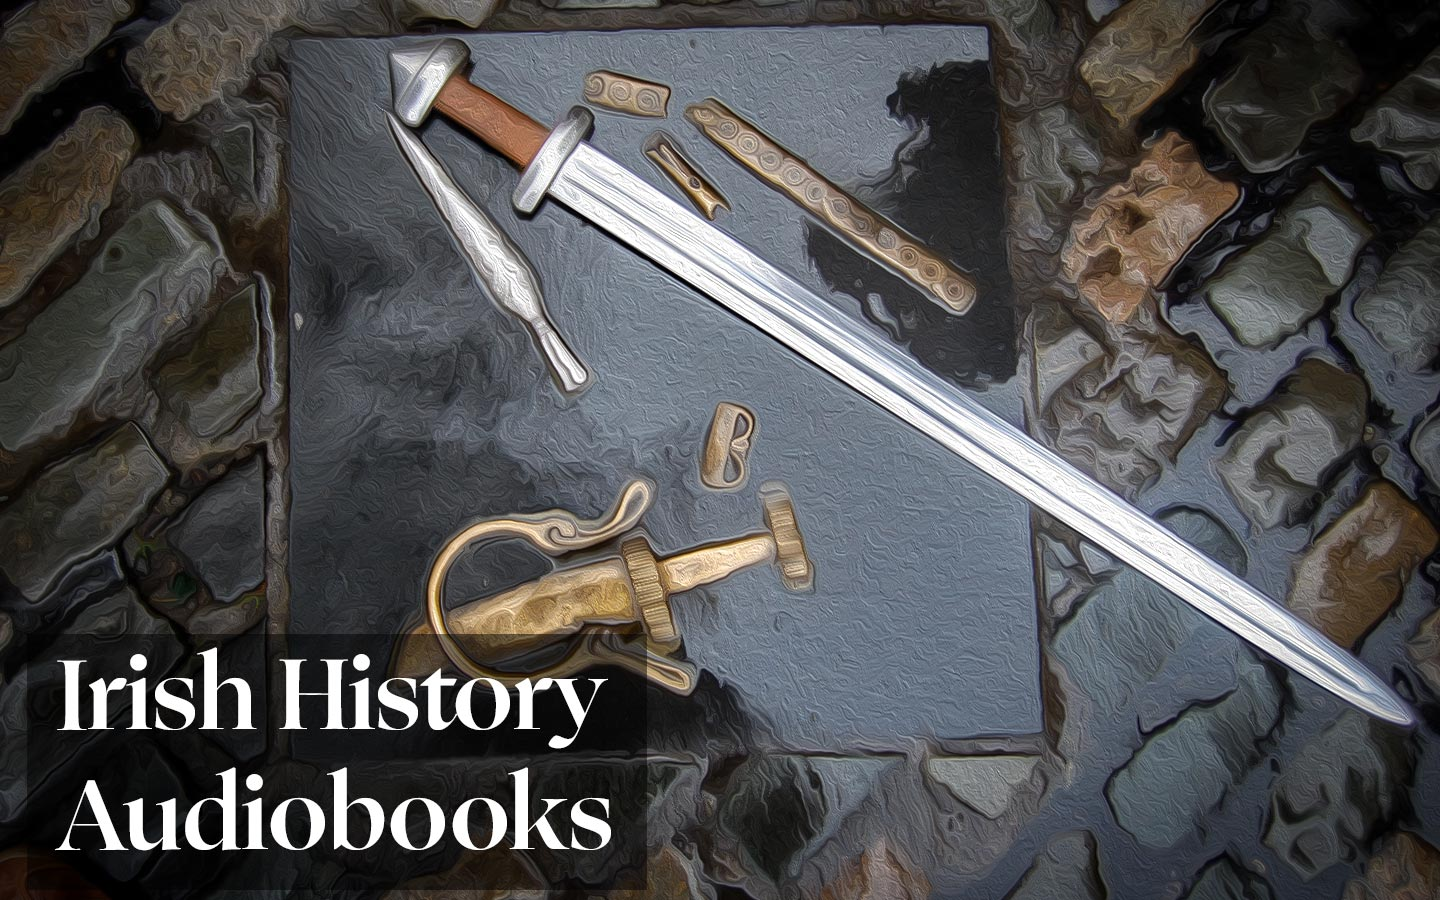 Free audiobooks on Irish History and Archaeology available to download from Abarta Heritage